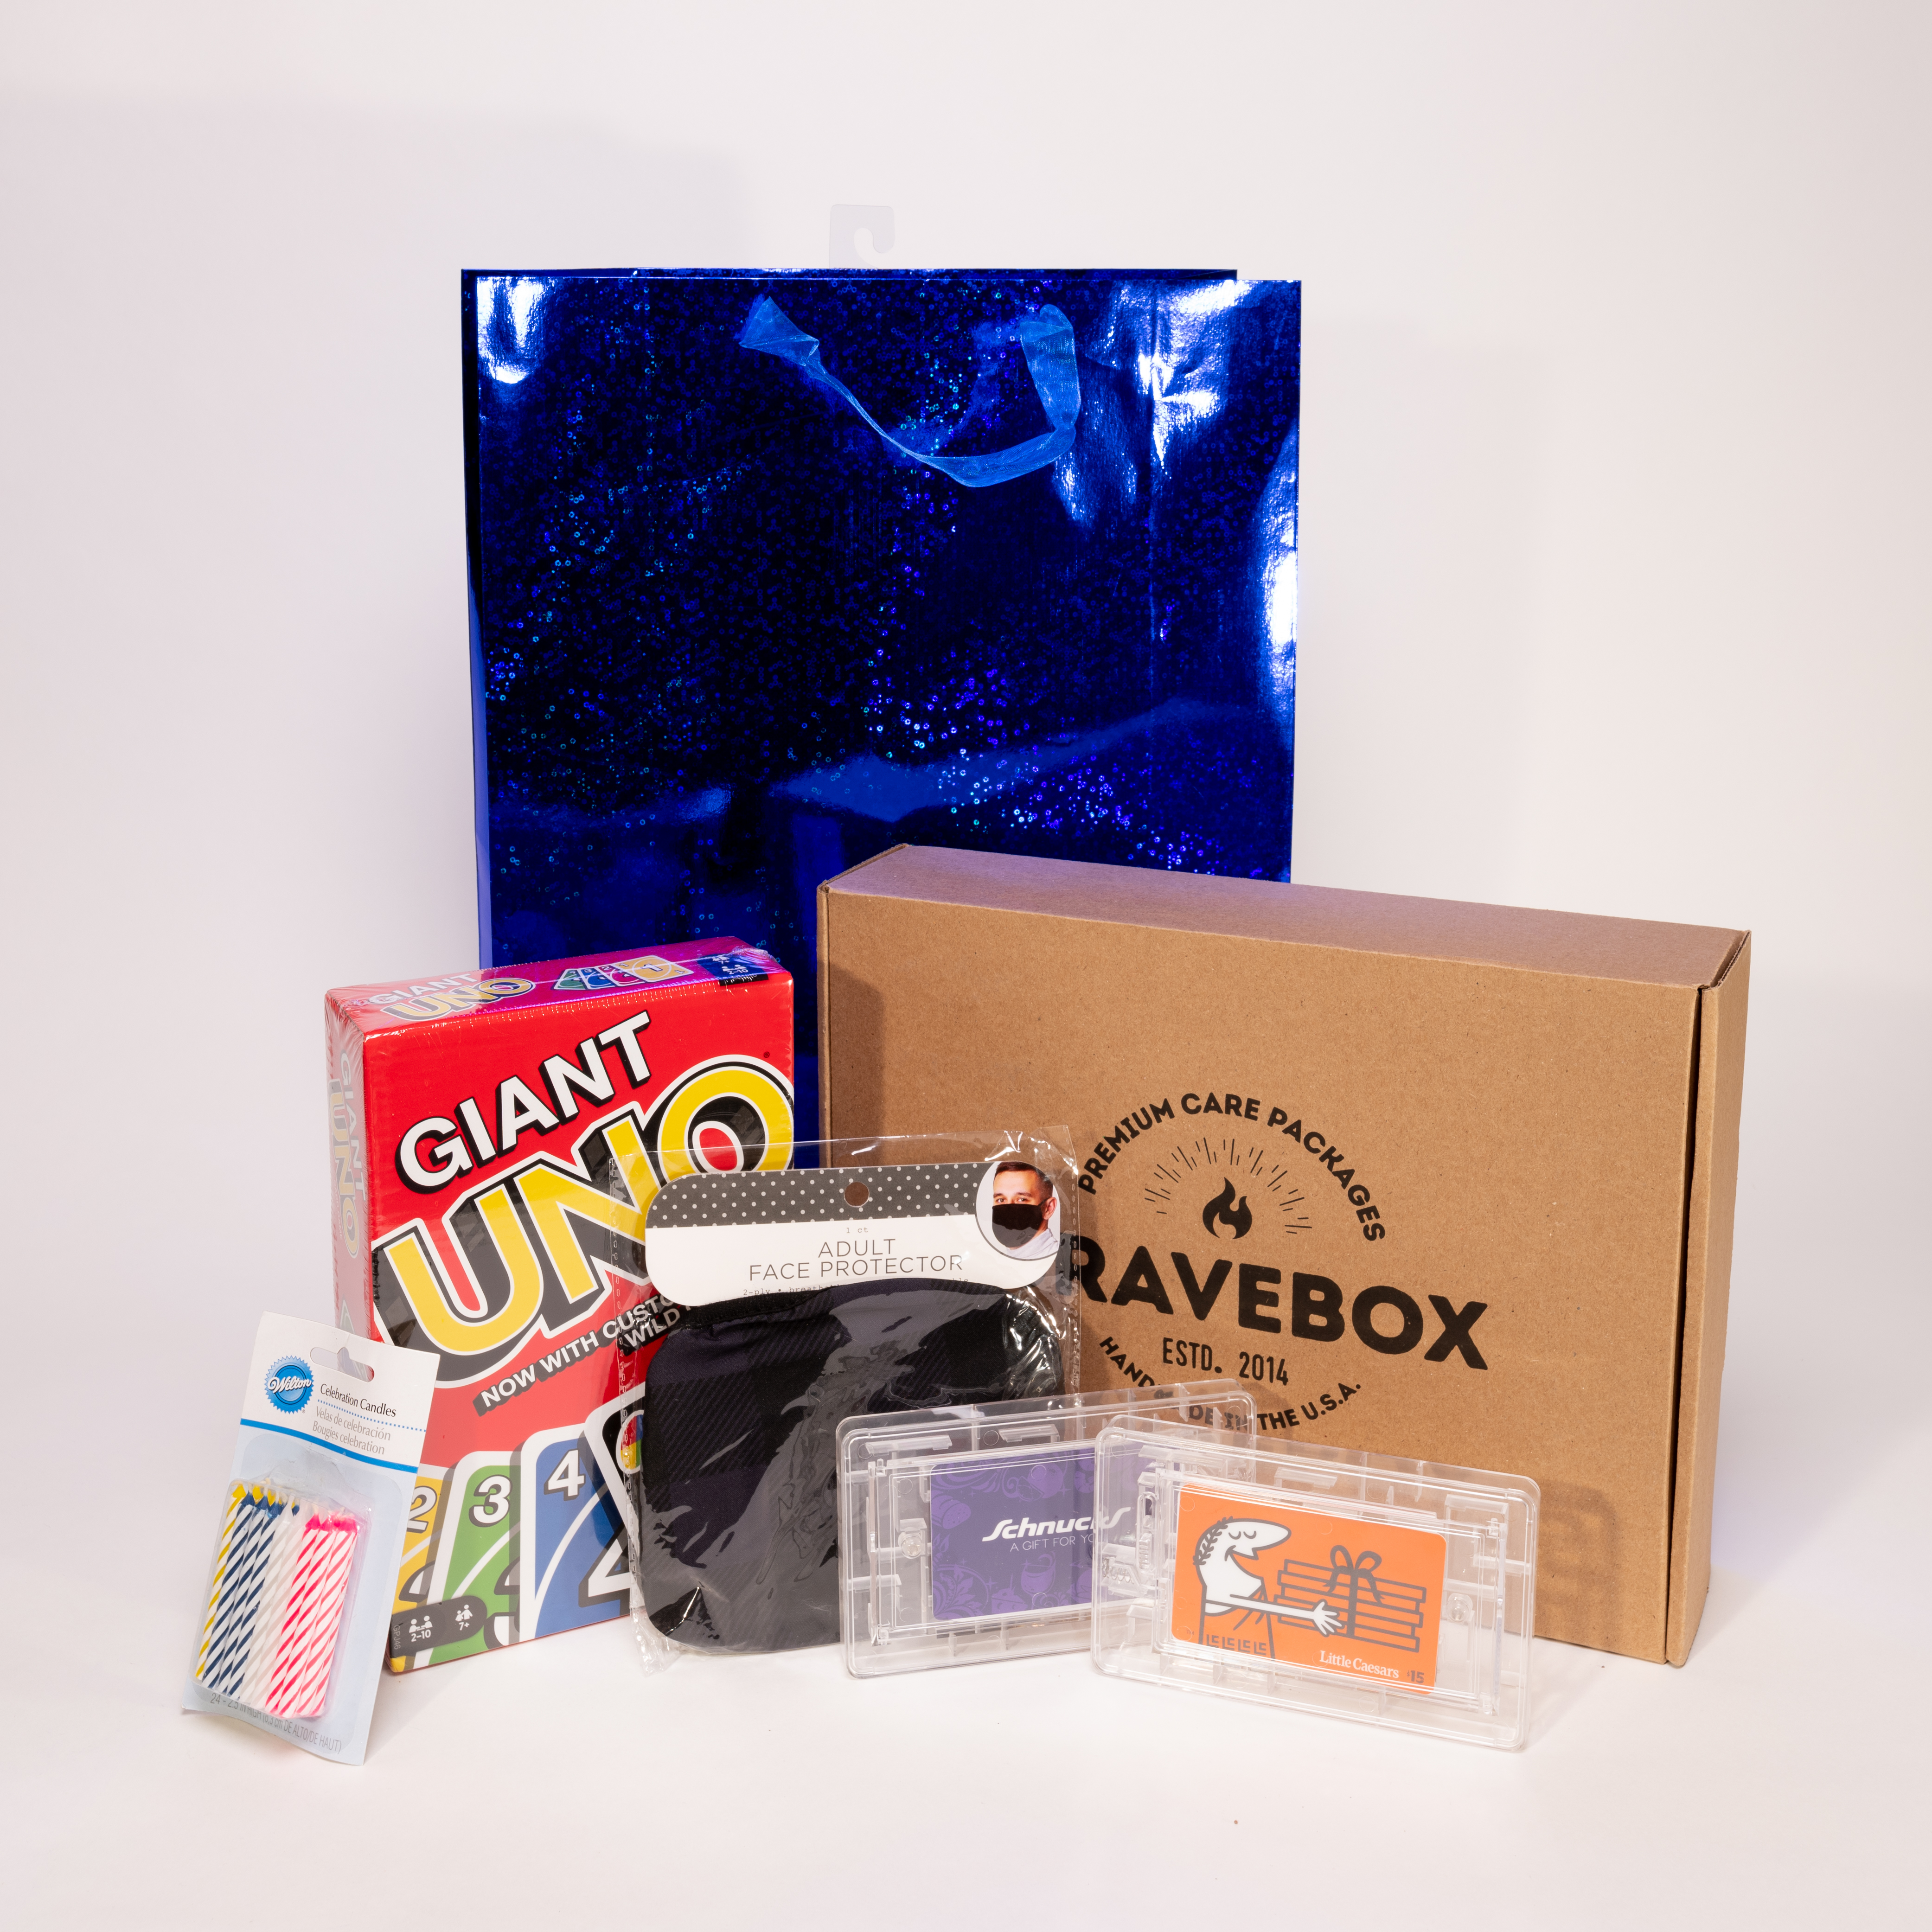 """A staged photoshoot image of the contents of a """"birthday box,"""" including the card game UNO and some"""